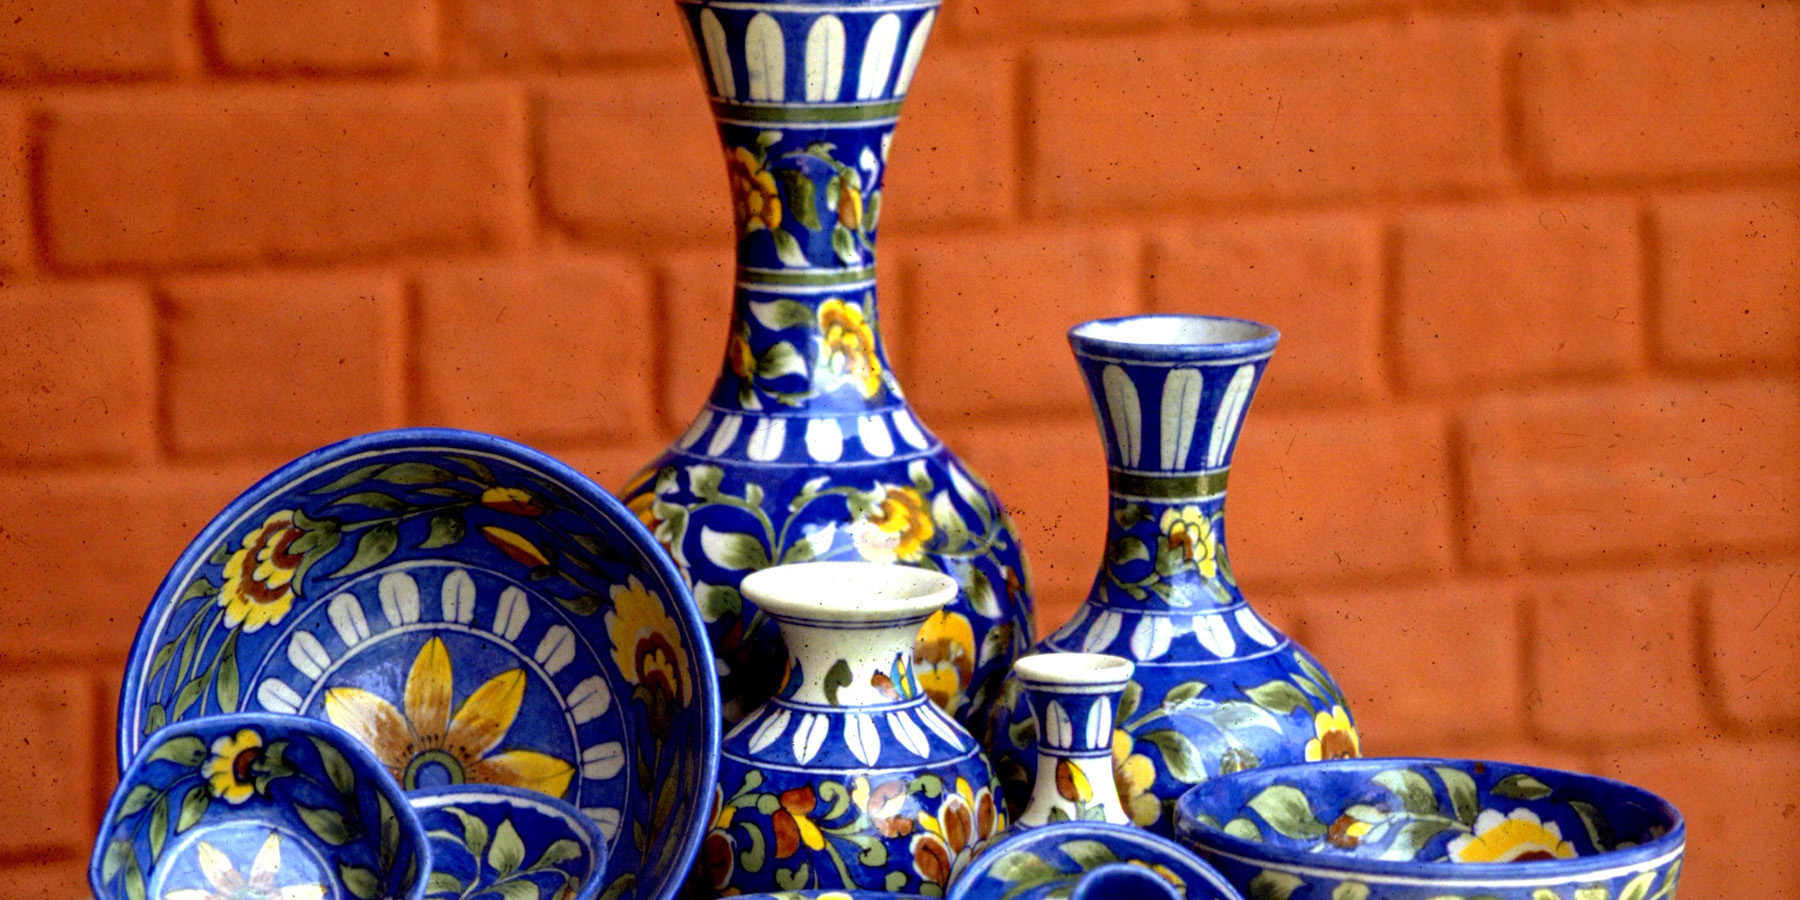 Ceramics & Clay Handicrafts Supplier